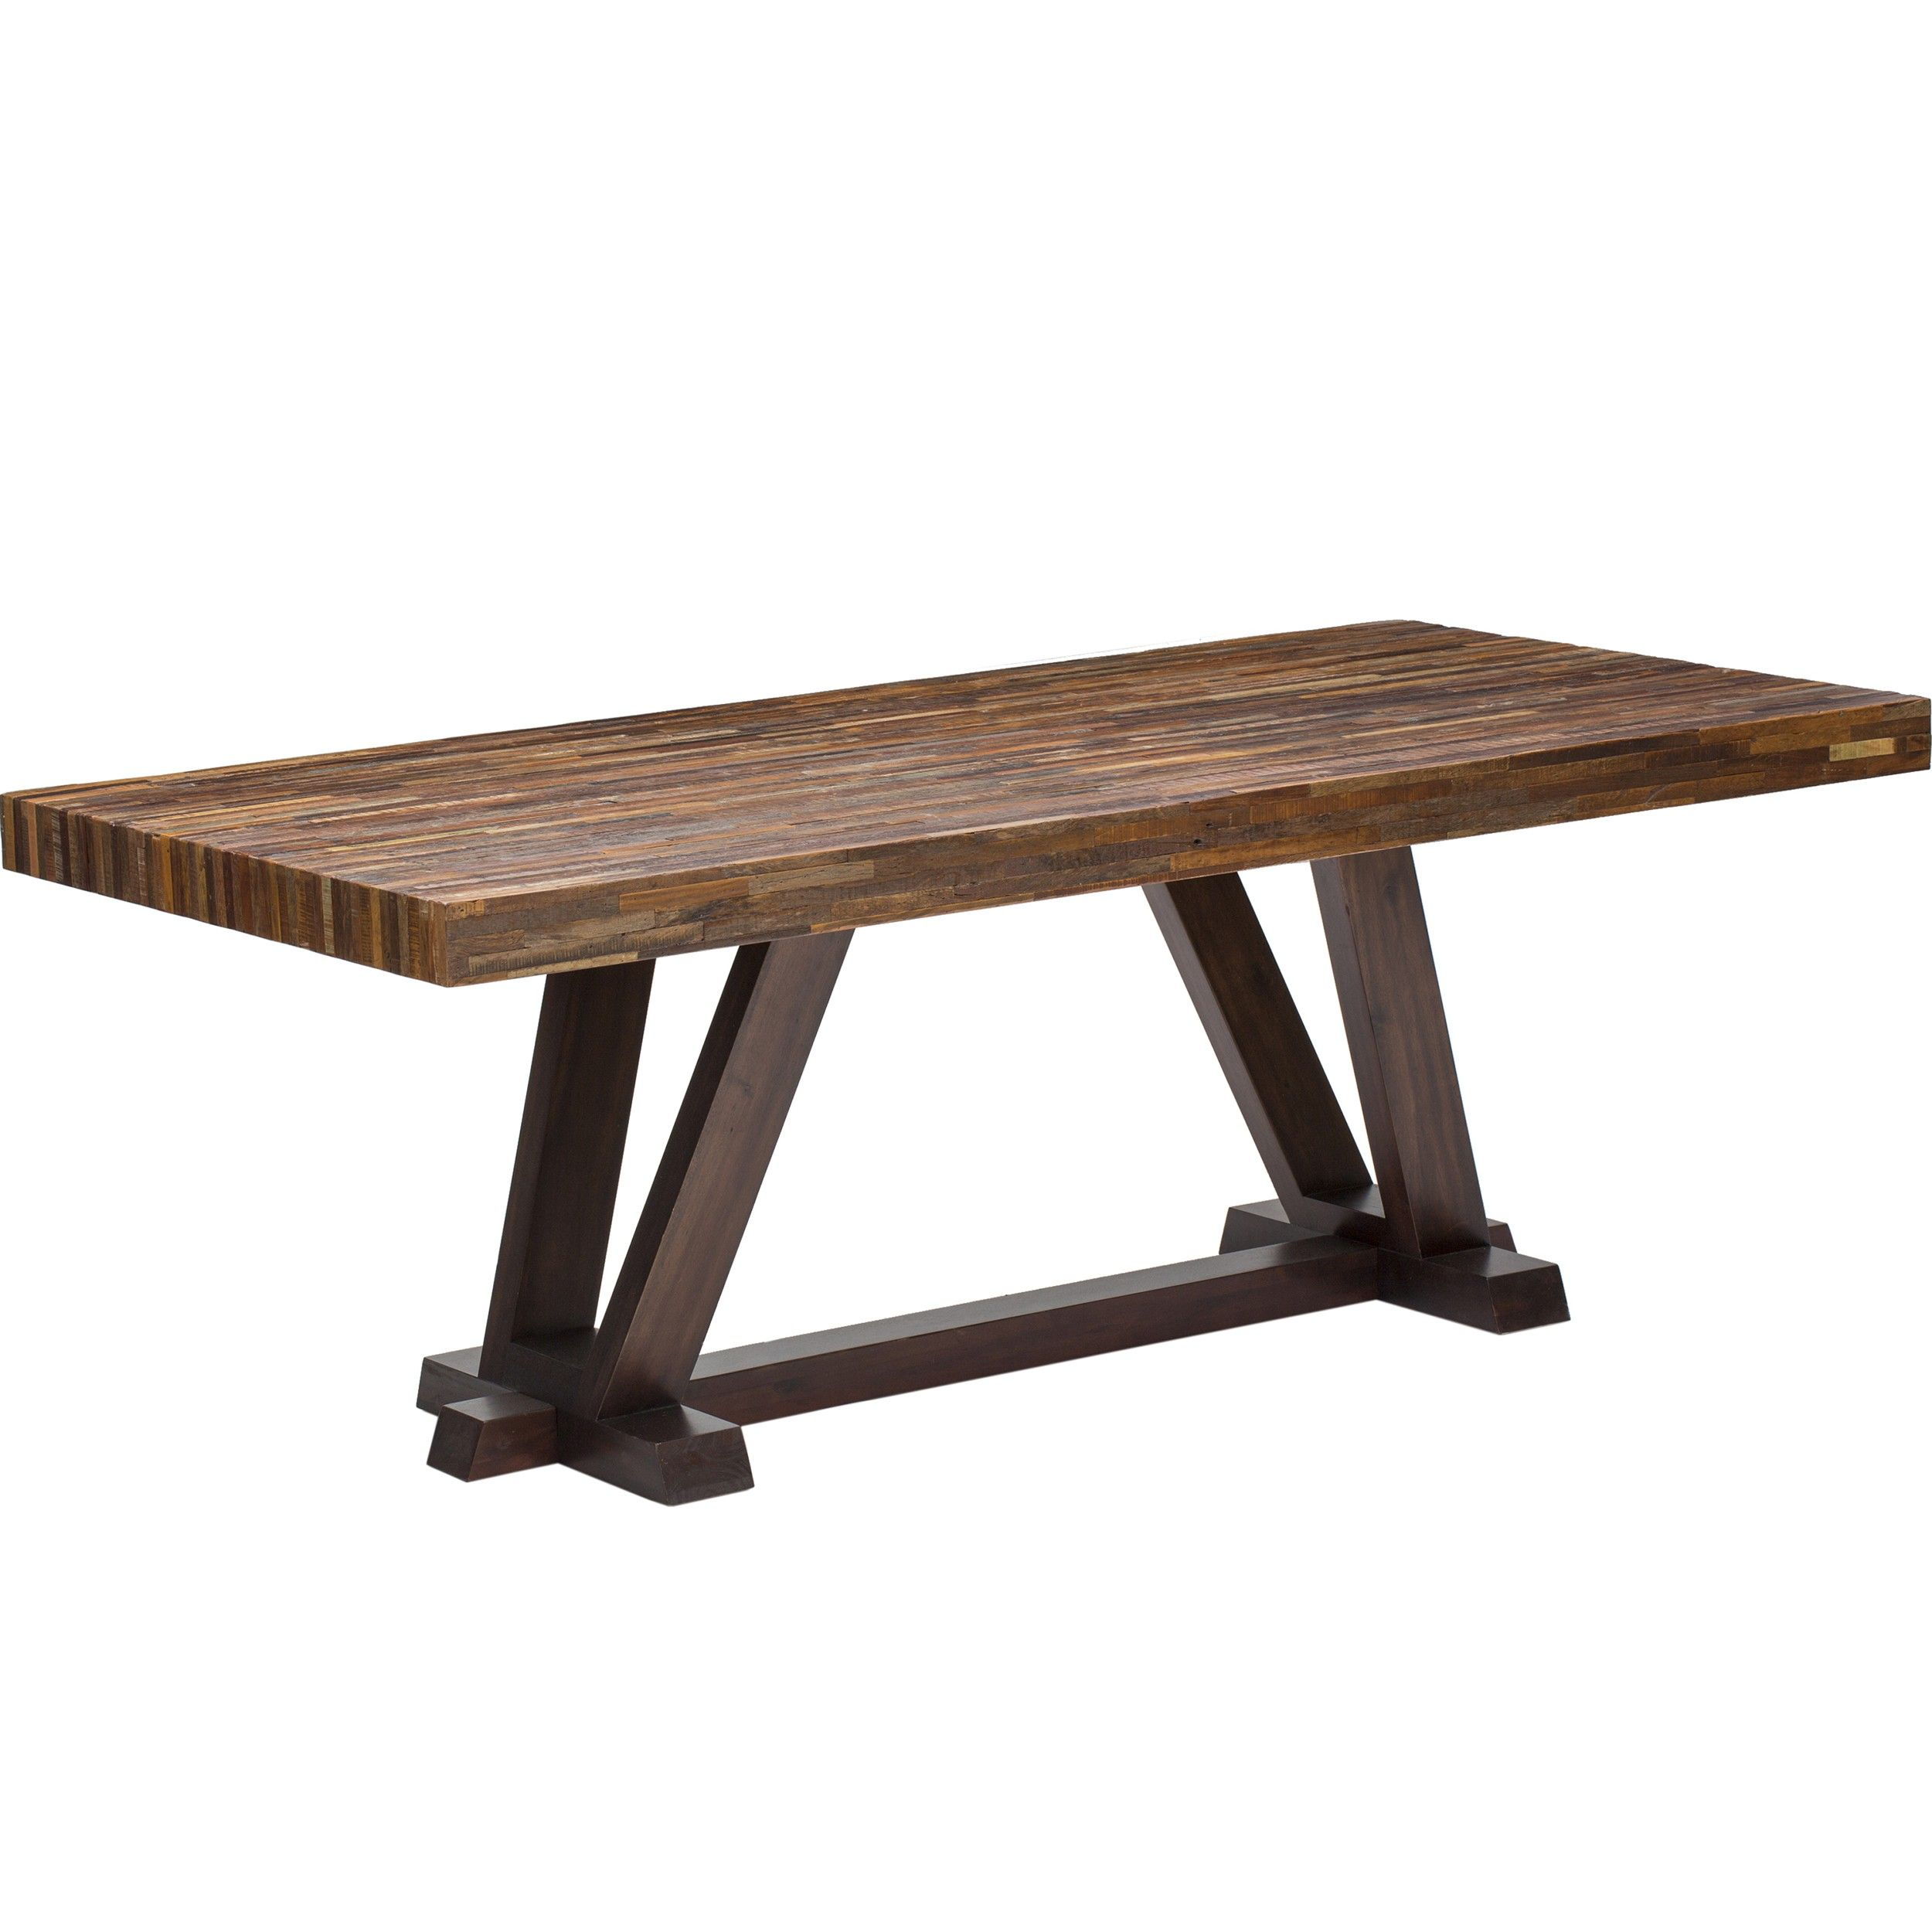 Max 84 Furniture Dining Table Rectangular Dining Table Modern Dining Table